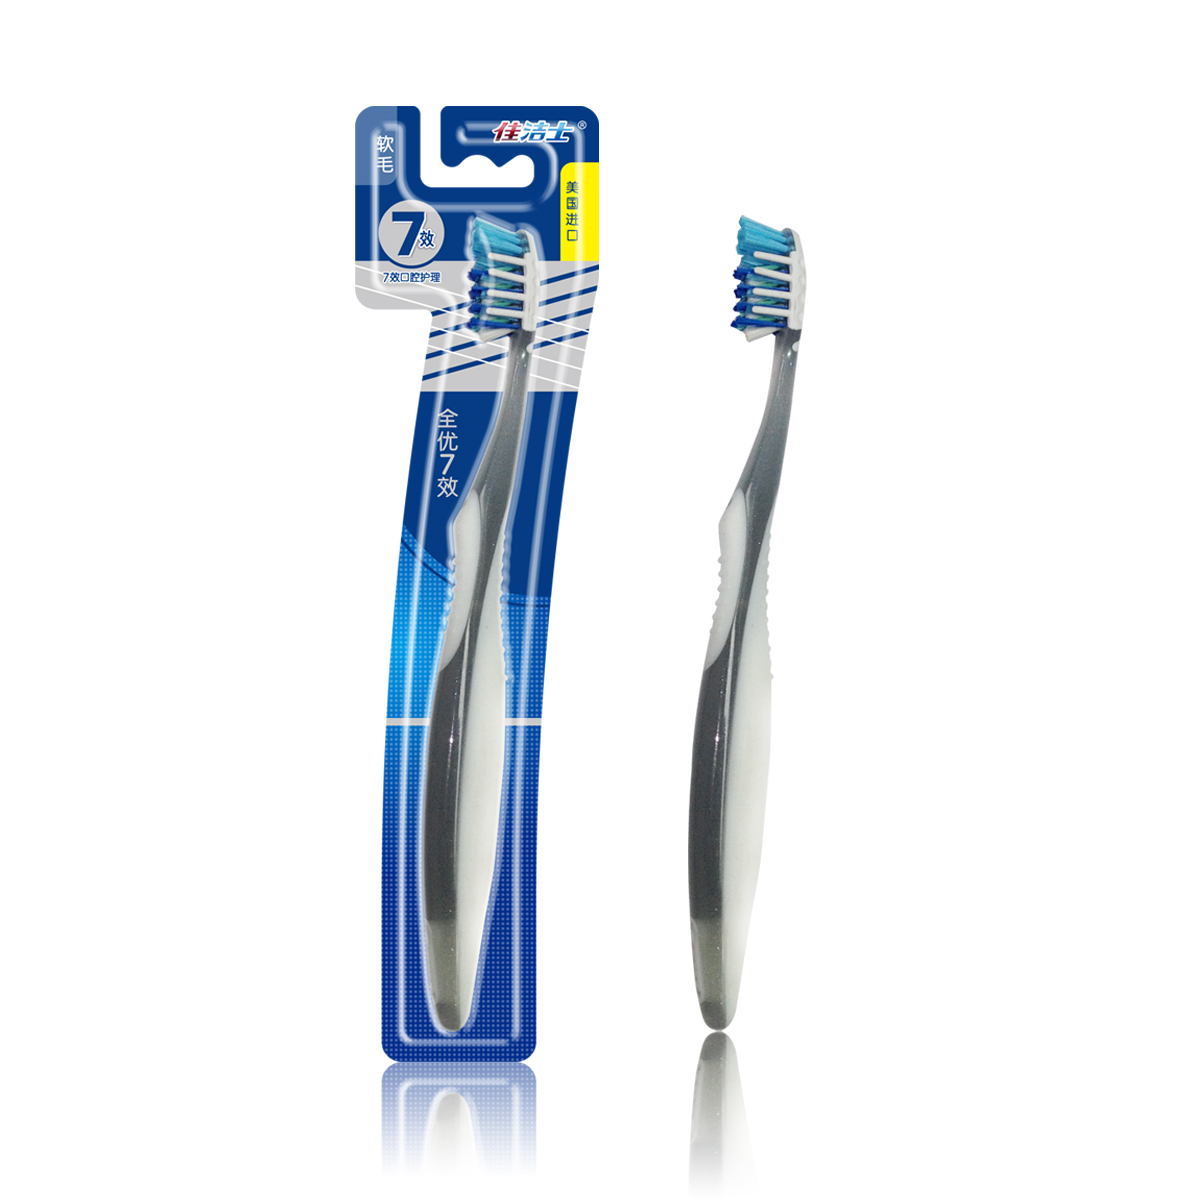 [Lynx supermarket] us imports crest toothbrush with excellent efficiency 7 1 sticks (fur)